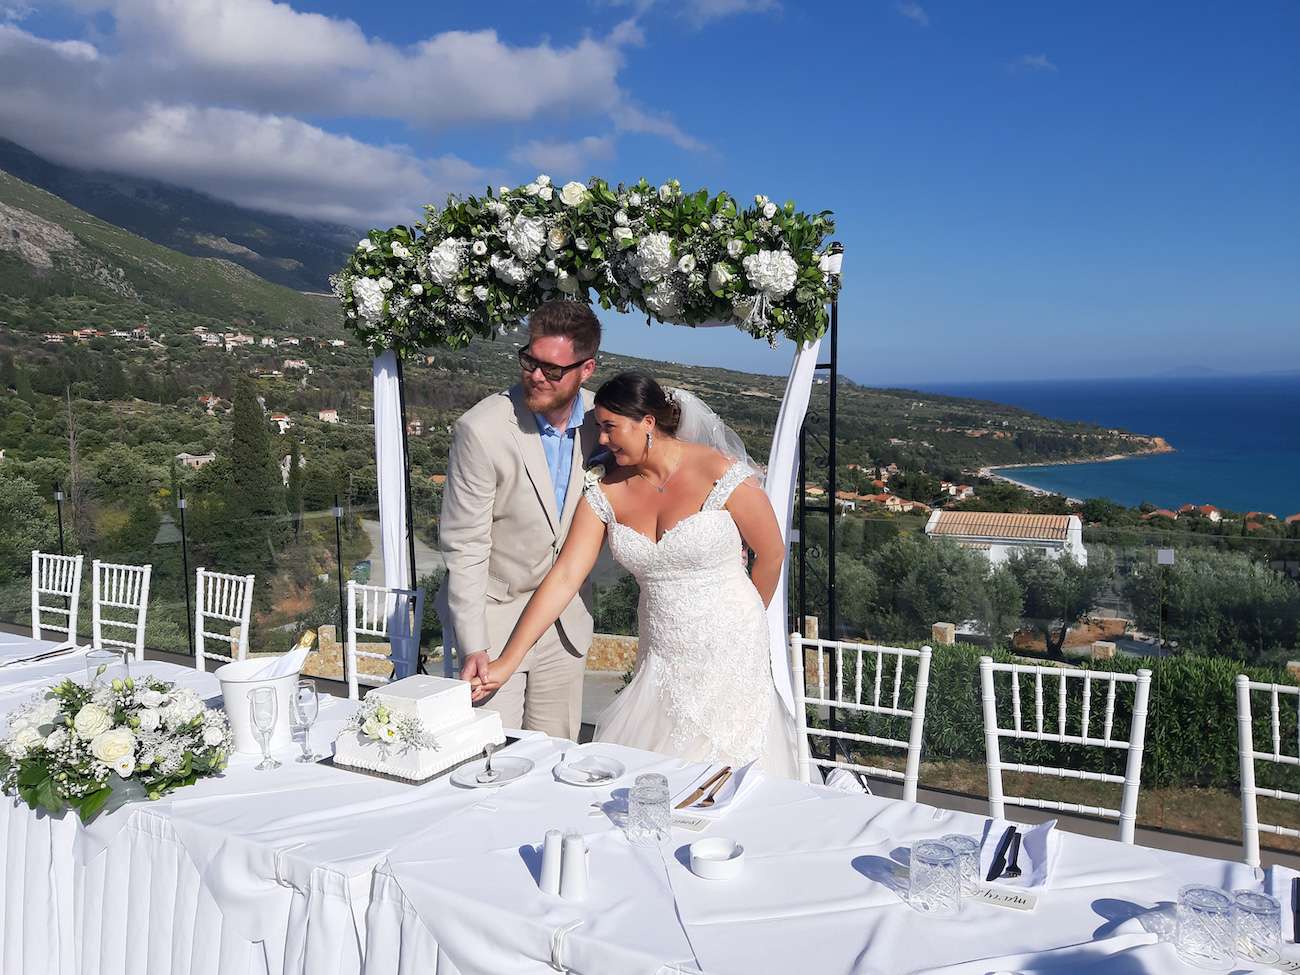 images/kefalonia_weddings/kefalonia_wedding_venues/kefalonia_wedding_planners/reception_venu_kefalonia/kefalonia_wedding_receptions_002.jpg